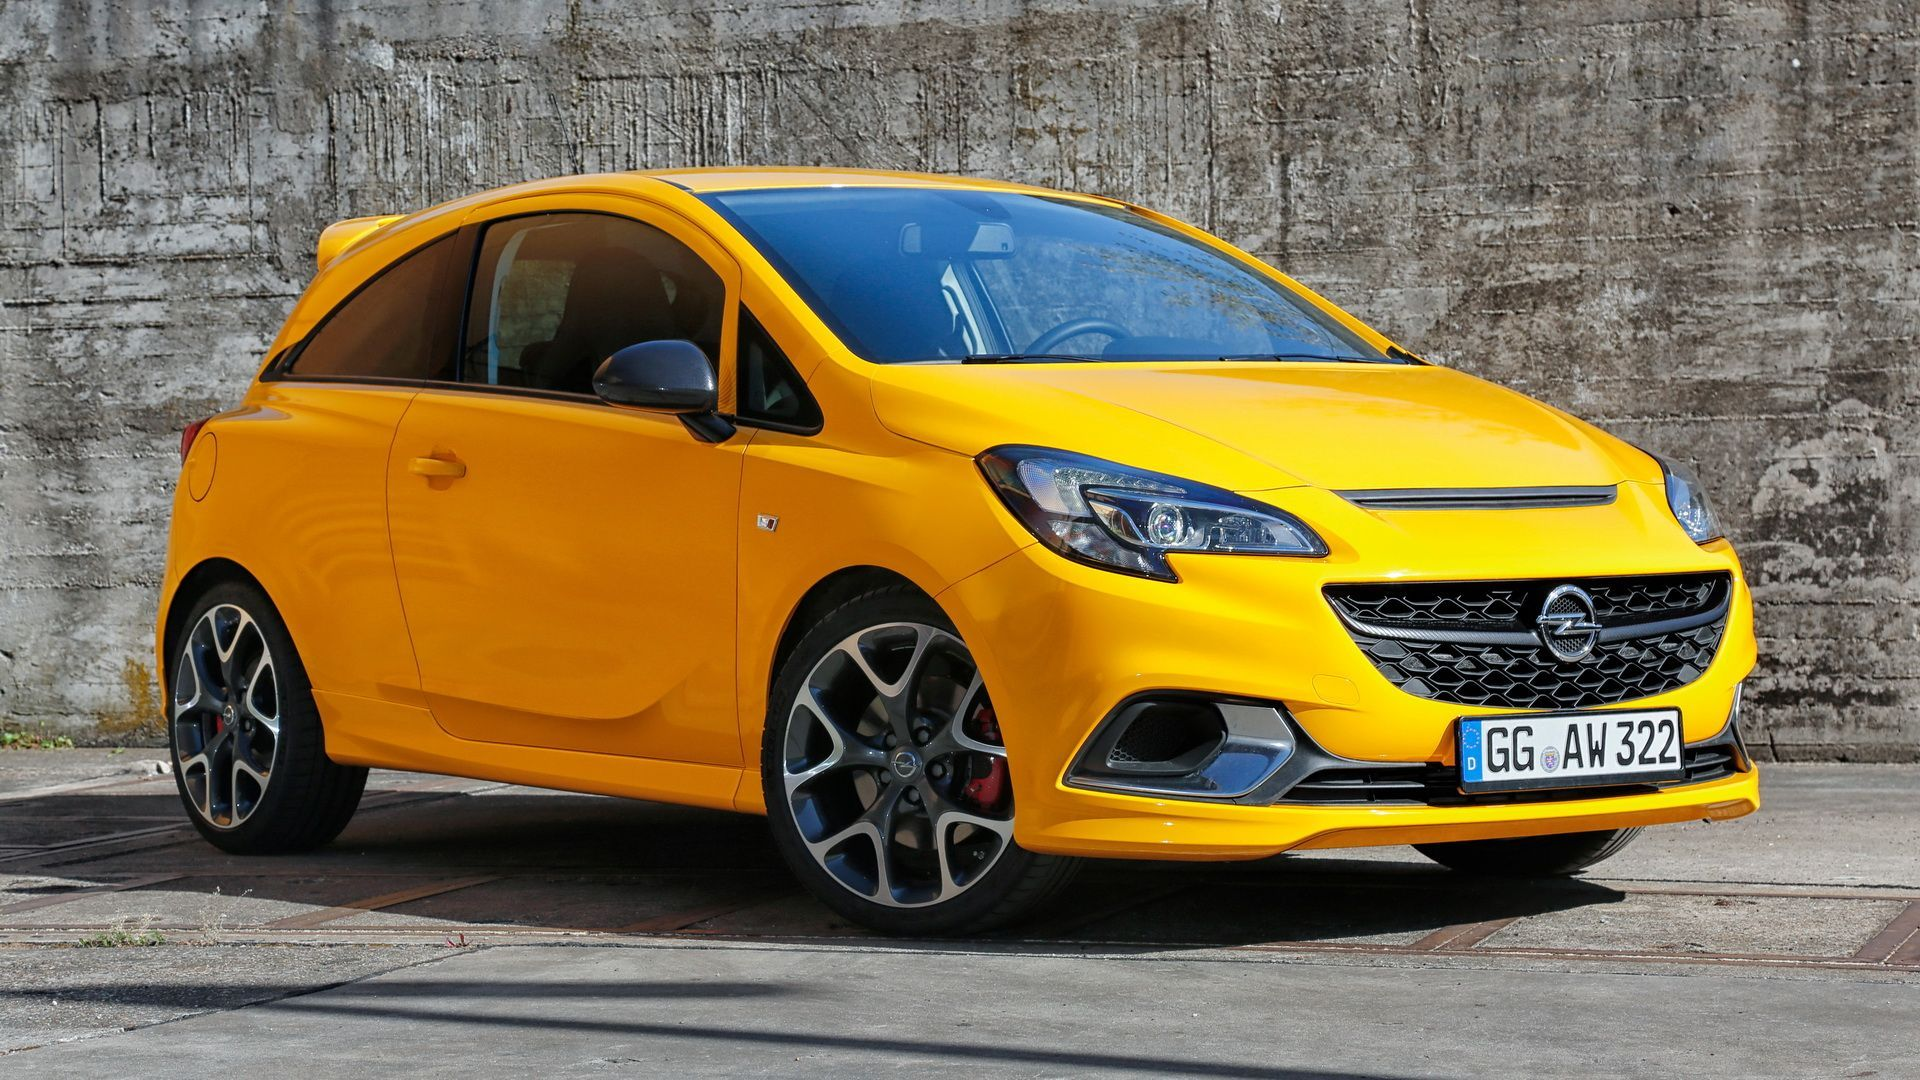 New Opel Corsa Gsi Gets A 150ps 1 4l Turbo And Opc Chassis Carscoops Opel Corsa Opel Vauxhall Corsa